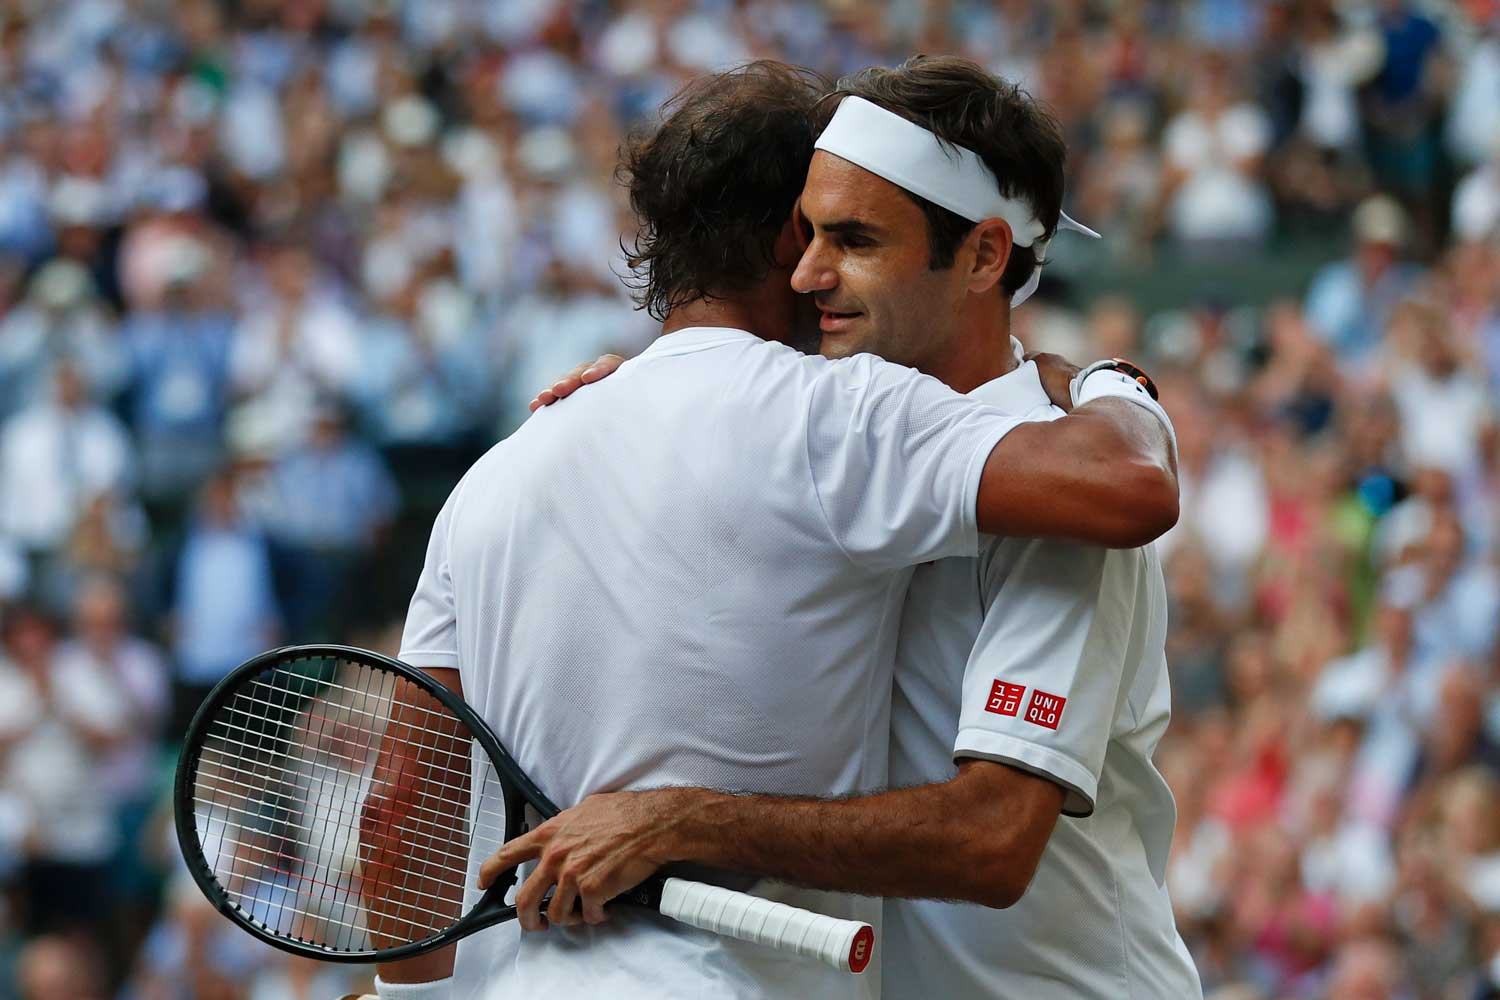 Wimbledon final: What time does Roger Federer vs. Novak Djokovic start?